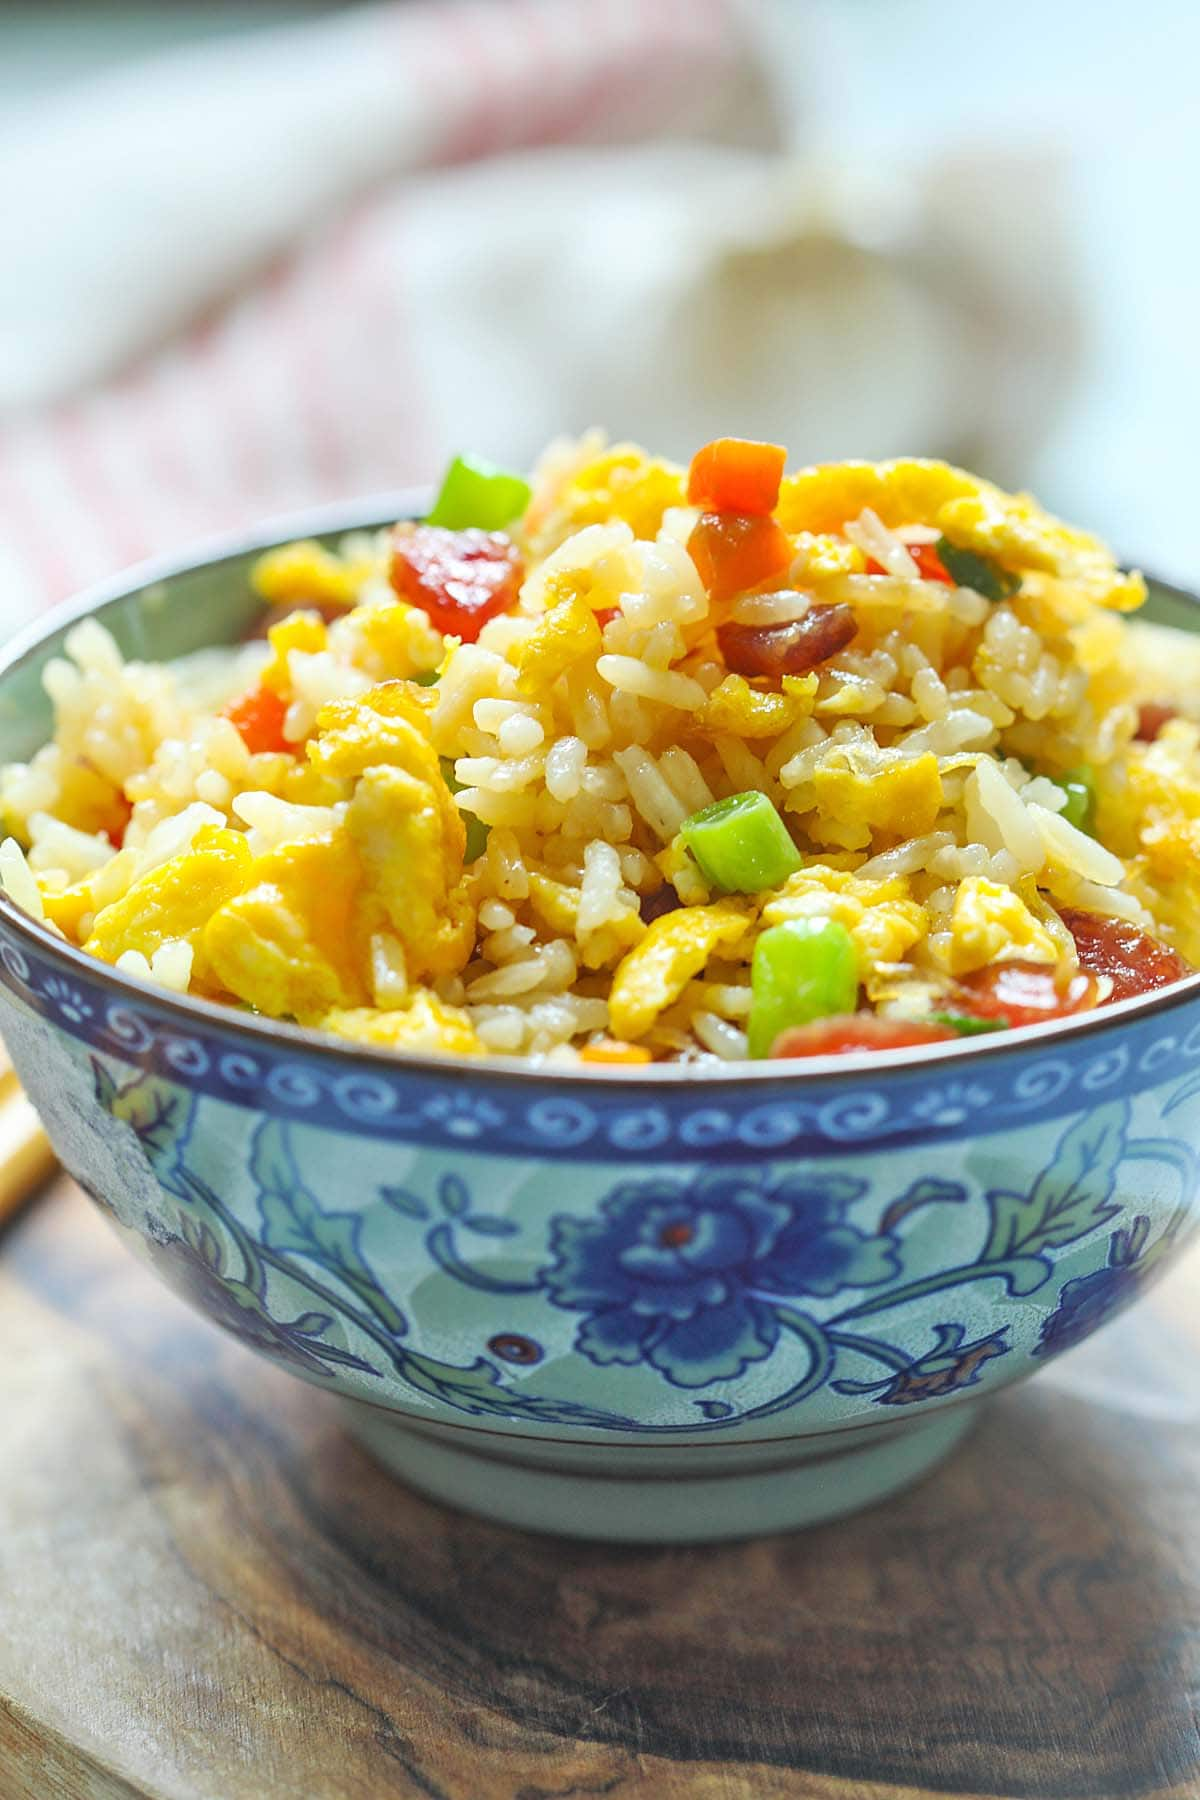 Chinese fried rice recipe with Chinese sausage or lapcheong.